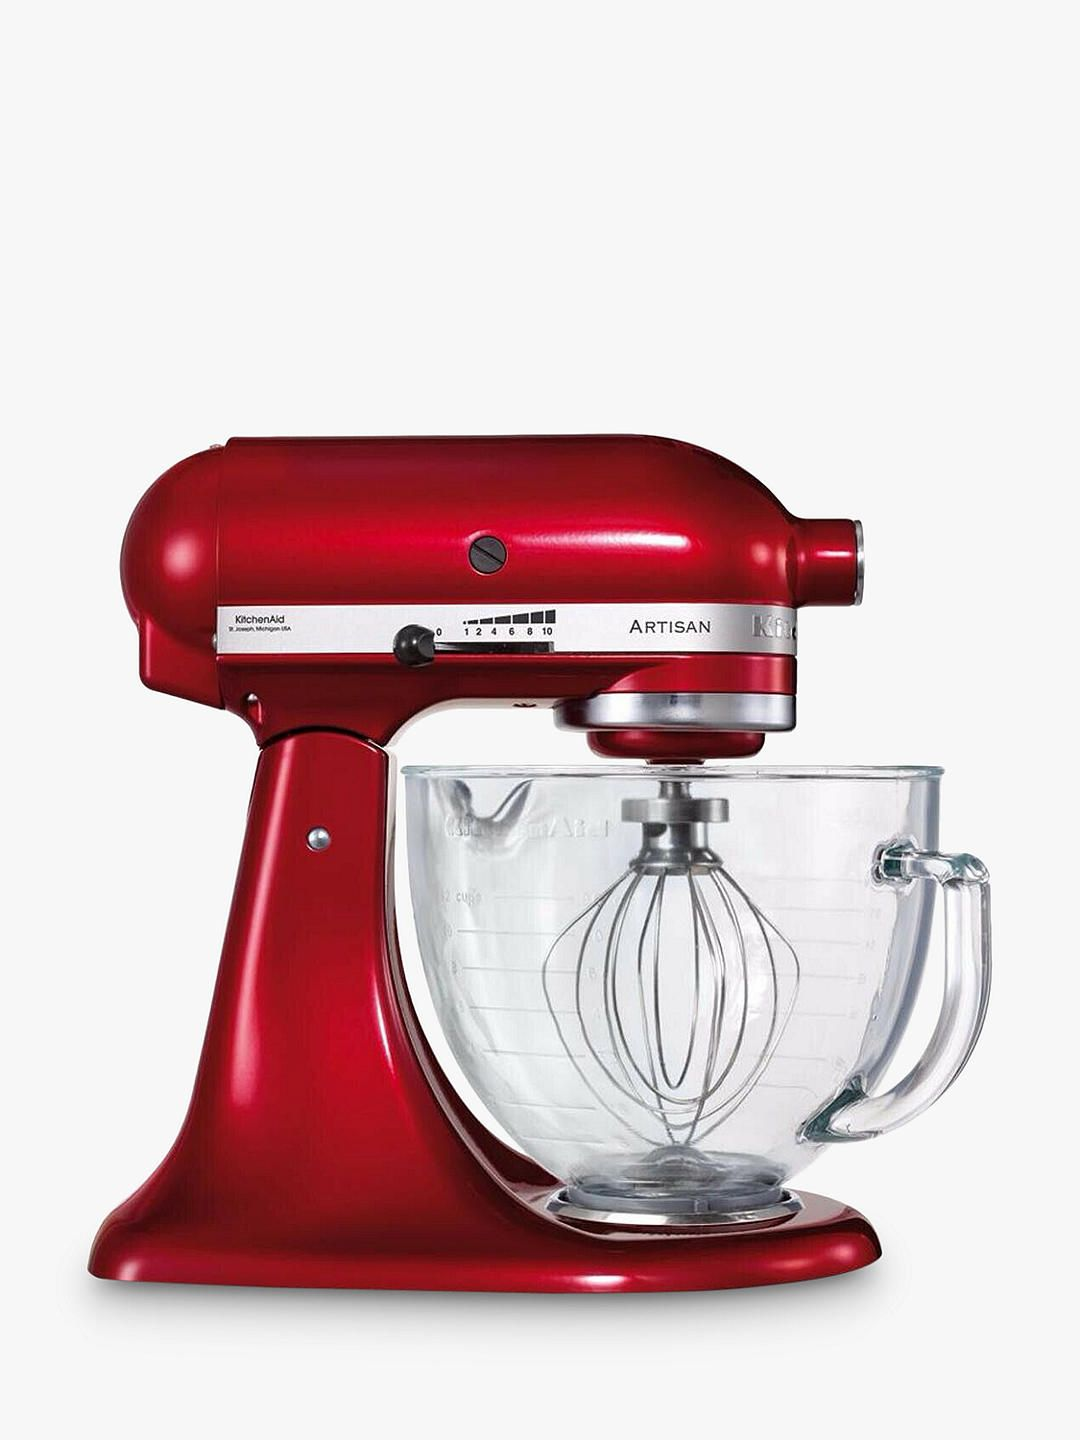 Kitchenaid artisan 48l stand mixer candy apple red in